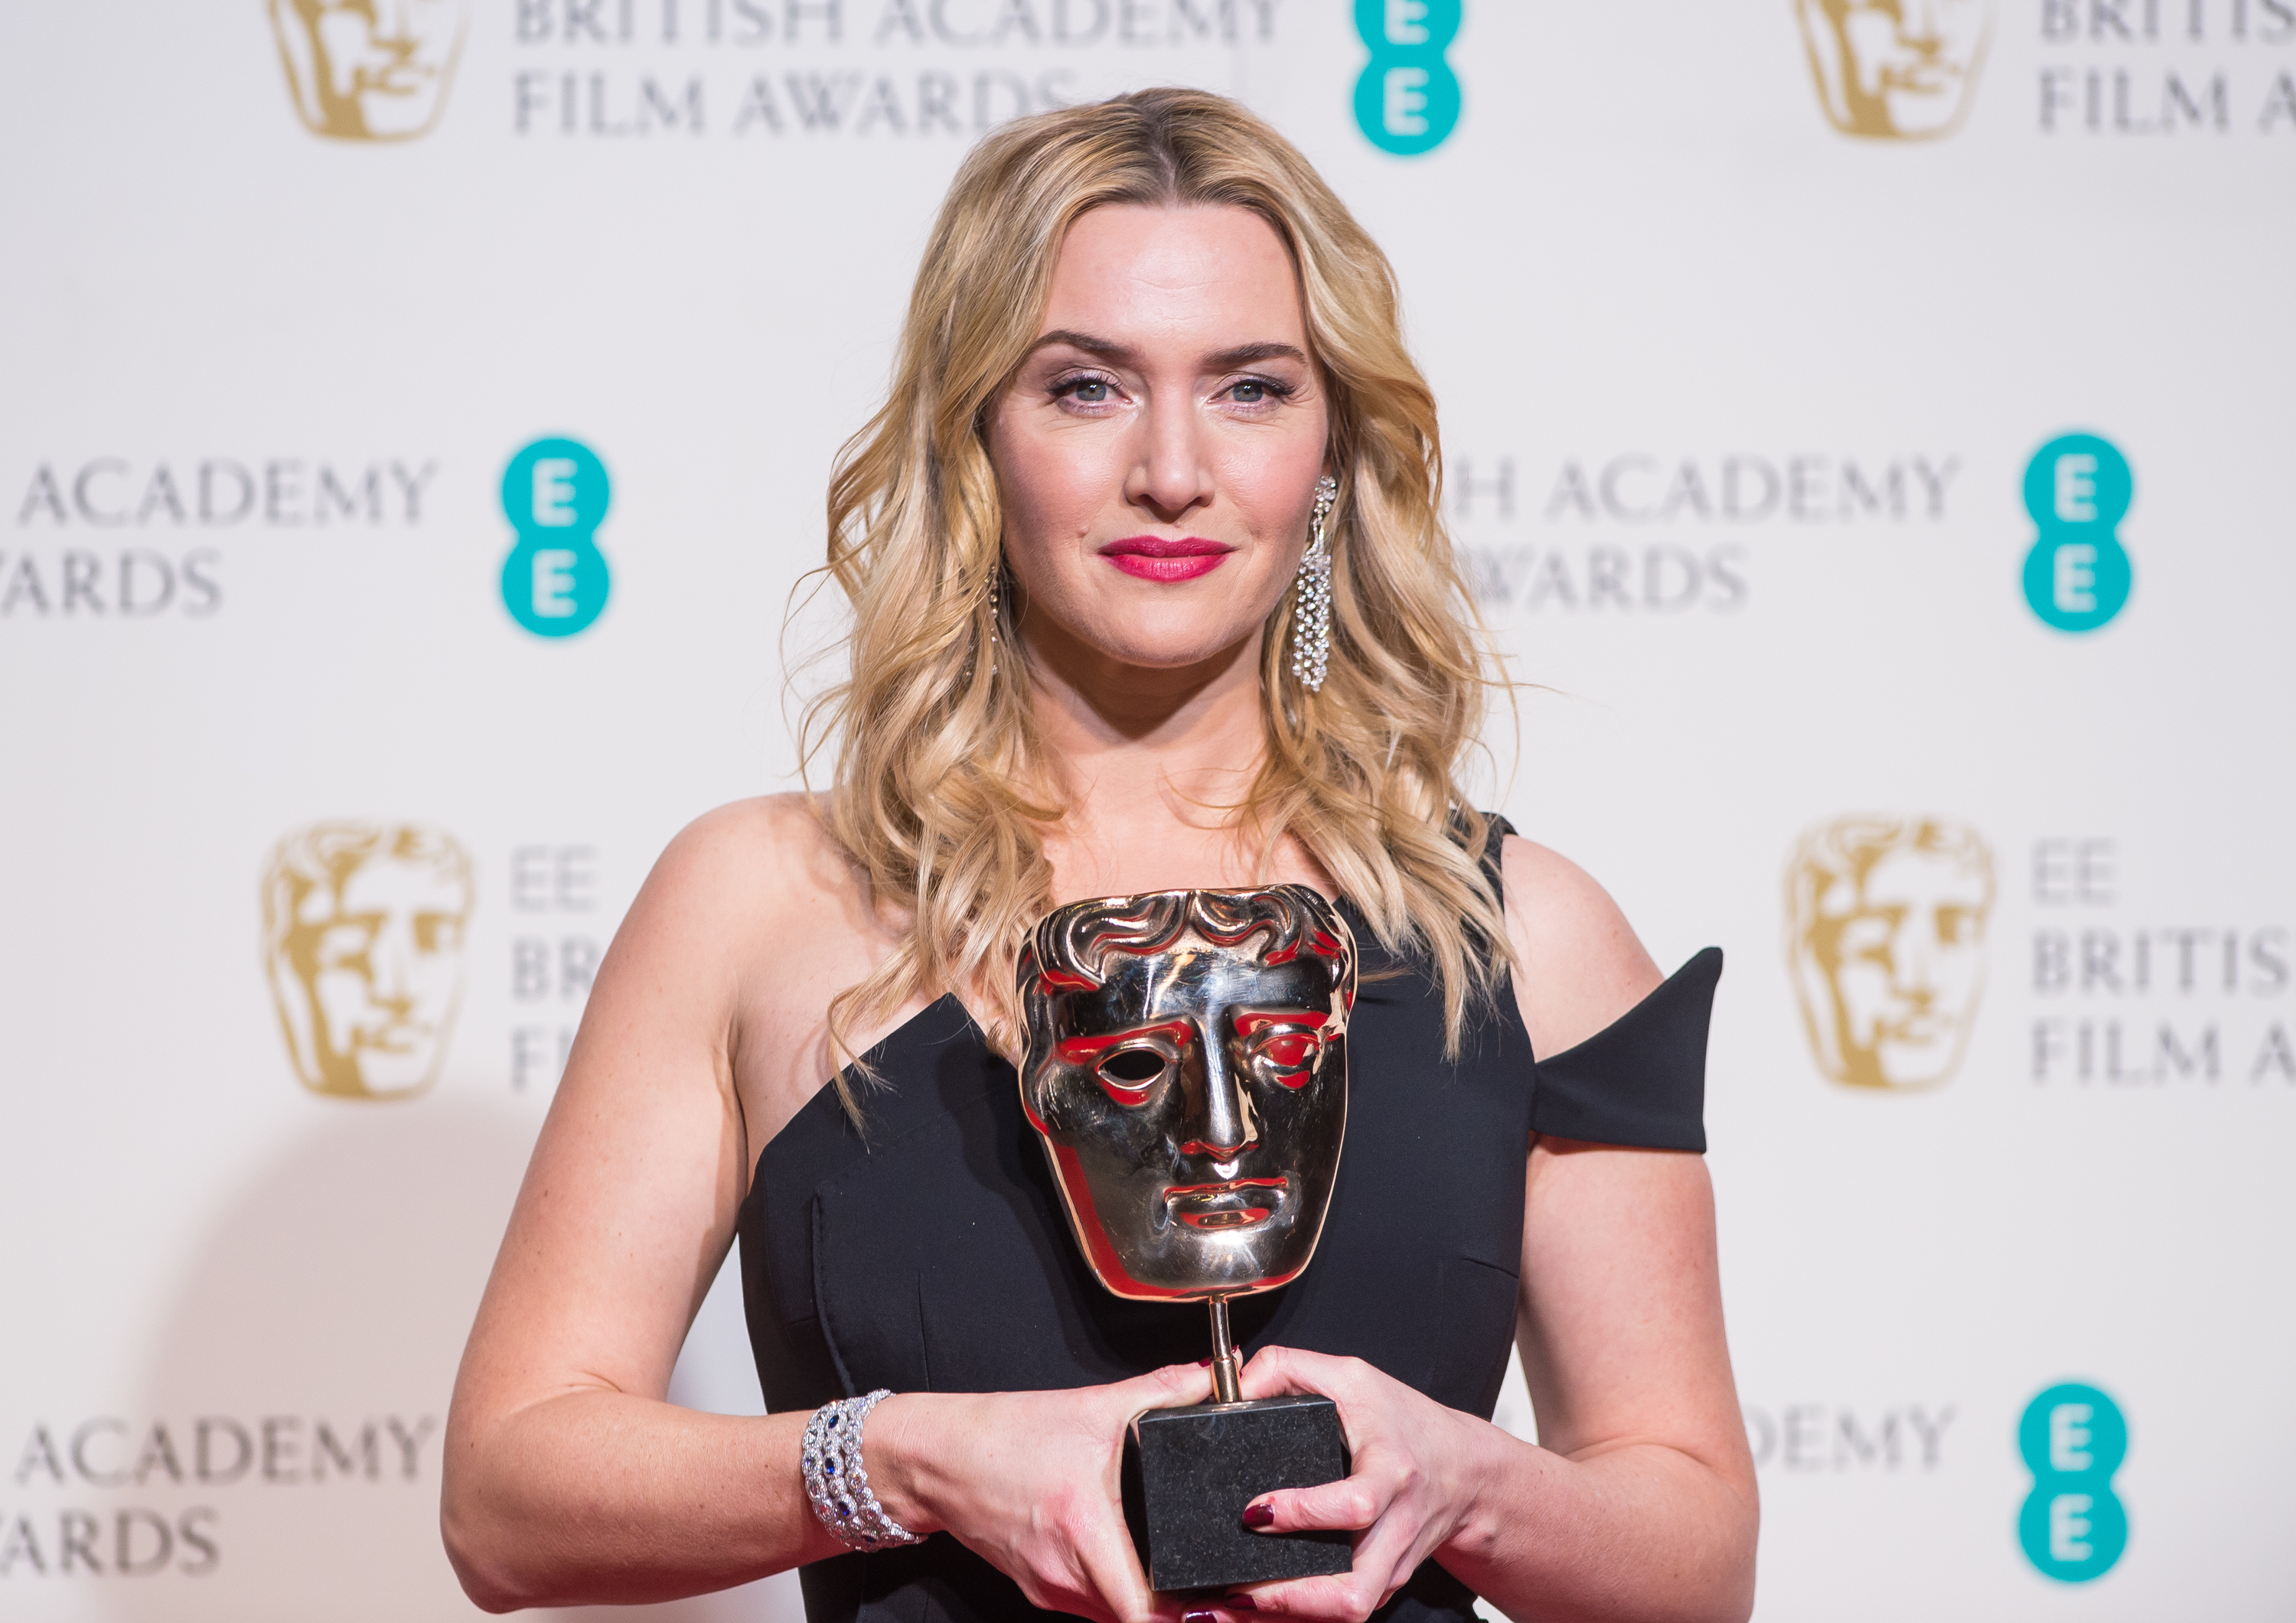 Kate Winslet poses in the winners room at the EE British Academy Film Awards at The Royal Opera House on Feb. 14, 2016 in London.